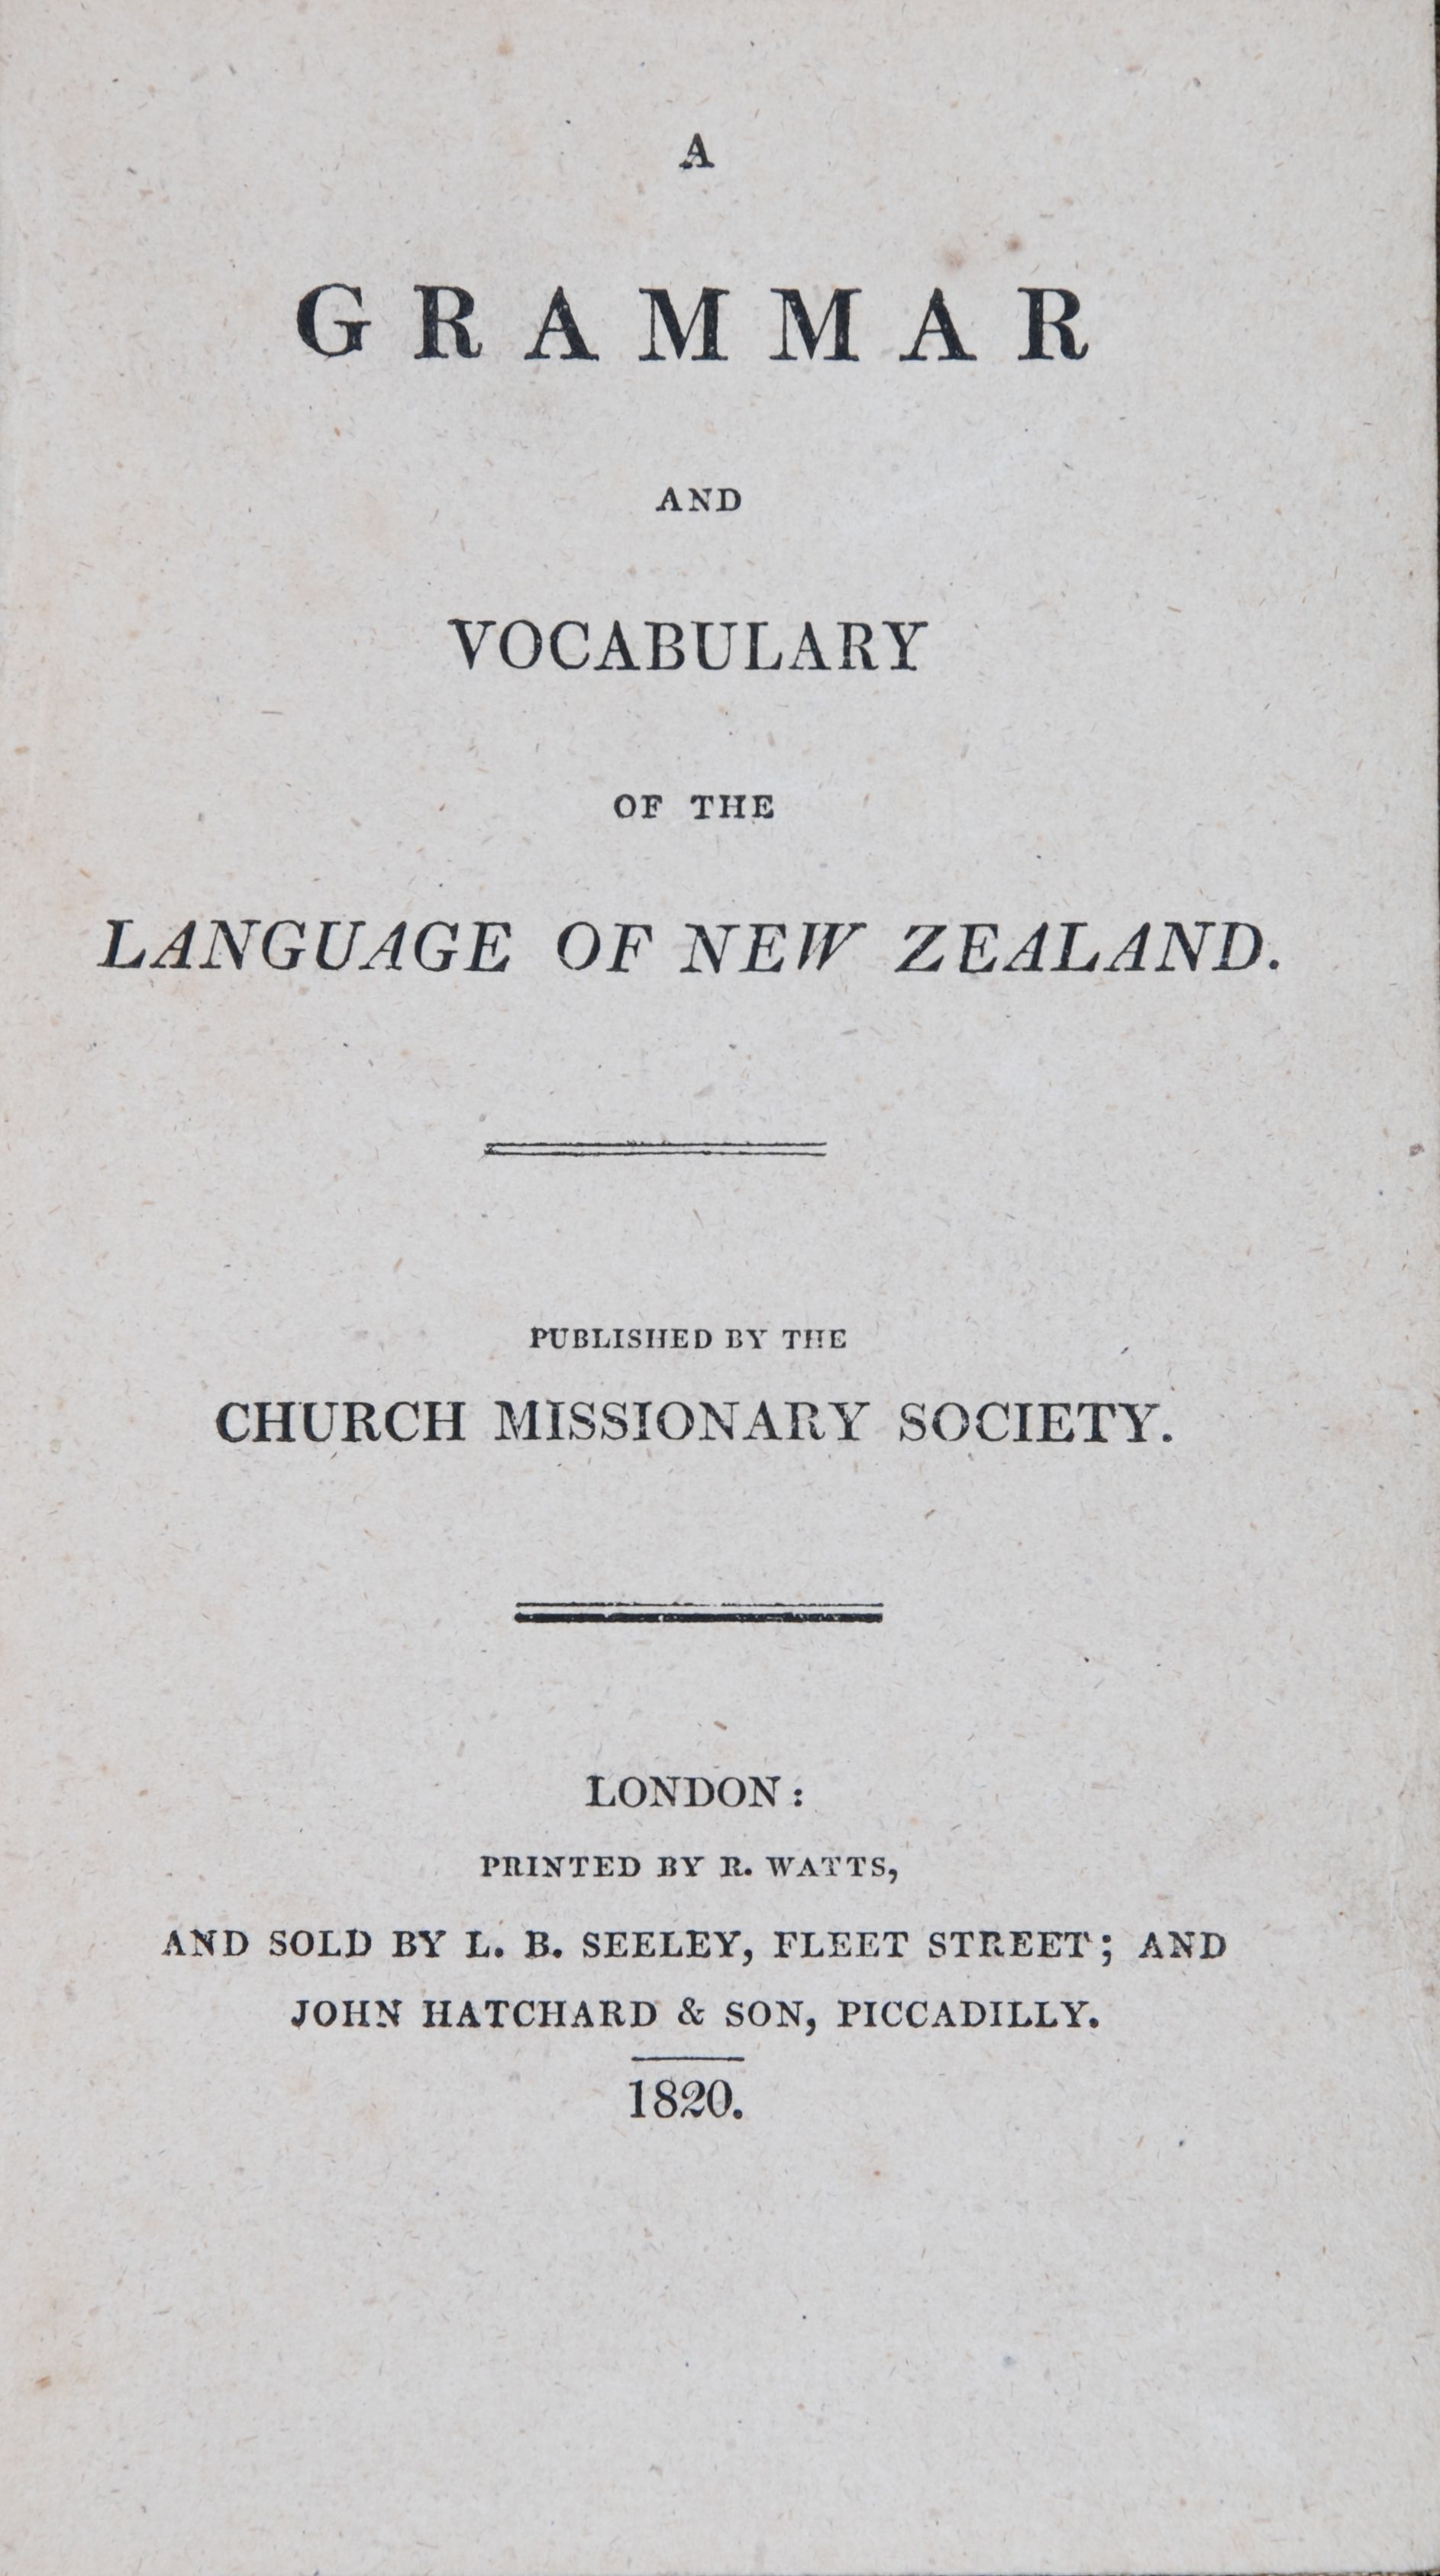 Thomas Kendall. A Grammar and Vocabulary of the Language of New Zealand. London: Church Missionary Society, 1820.